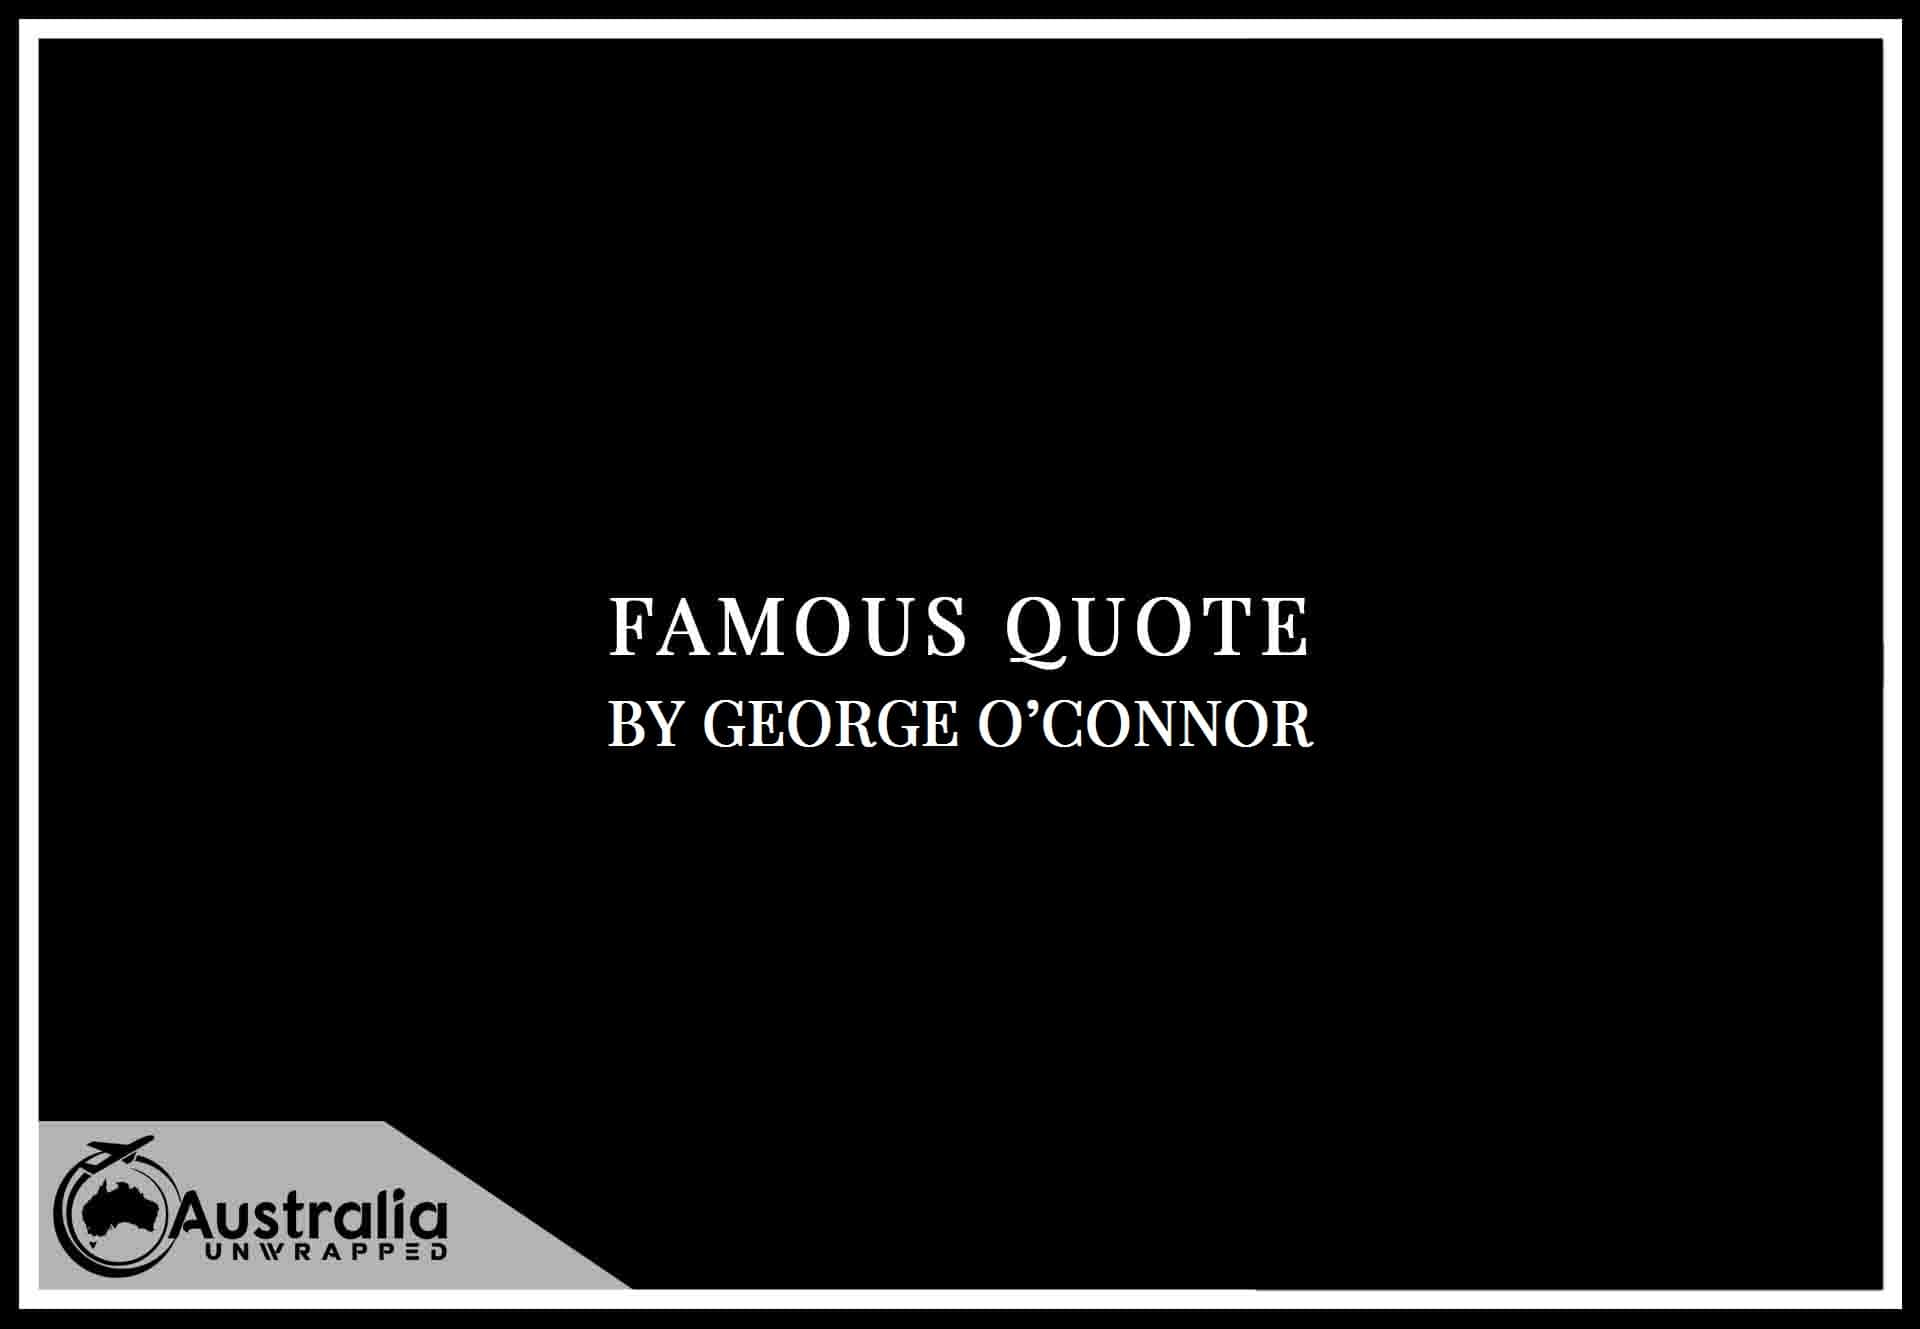 George O'Connor's Top 1 Popular and Famous Quotes